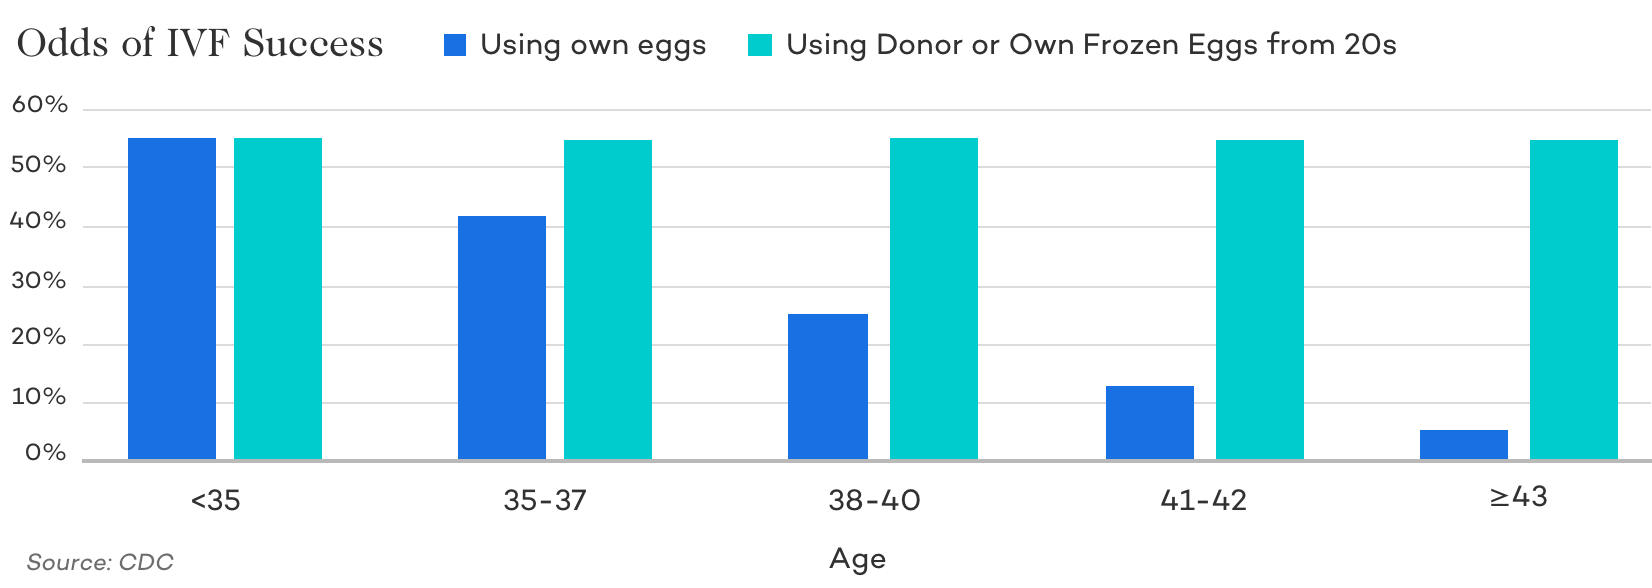 IVF and Donor Egg Success Rates